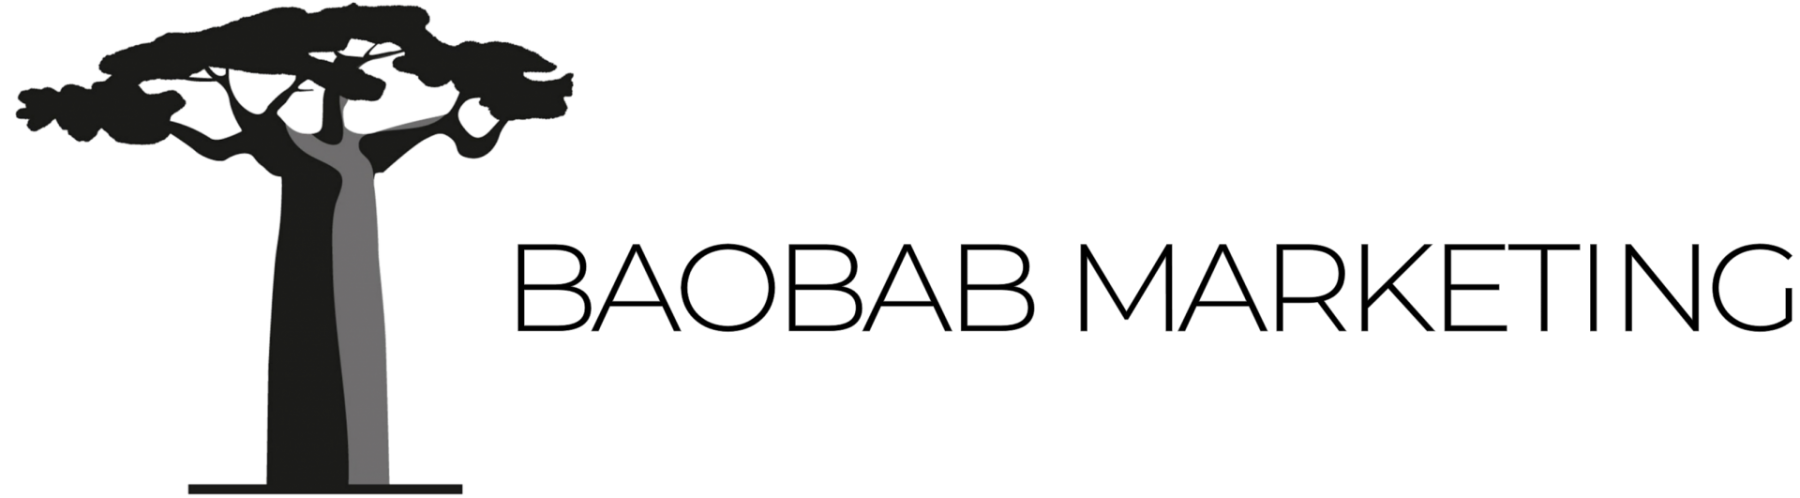 Baobab Marketing